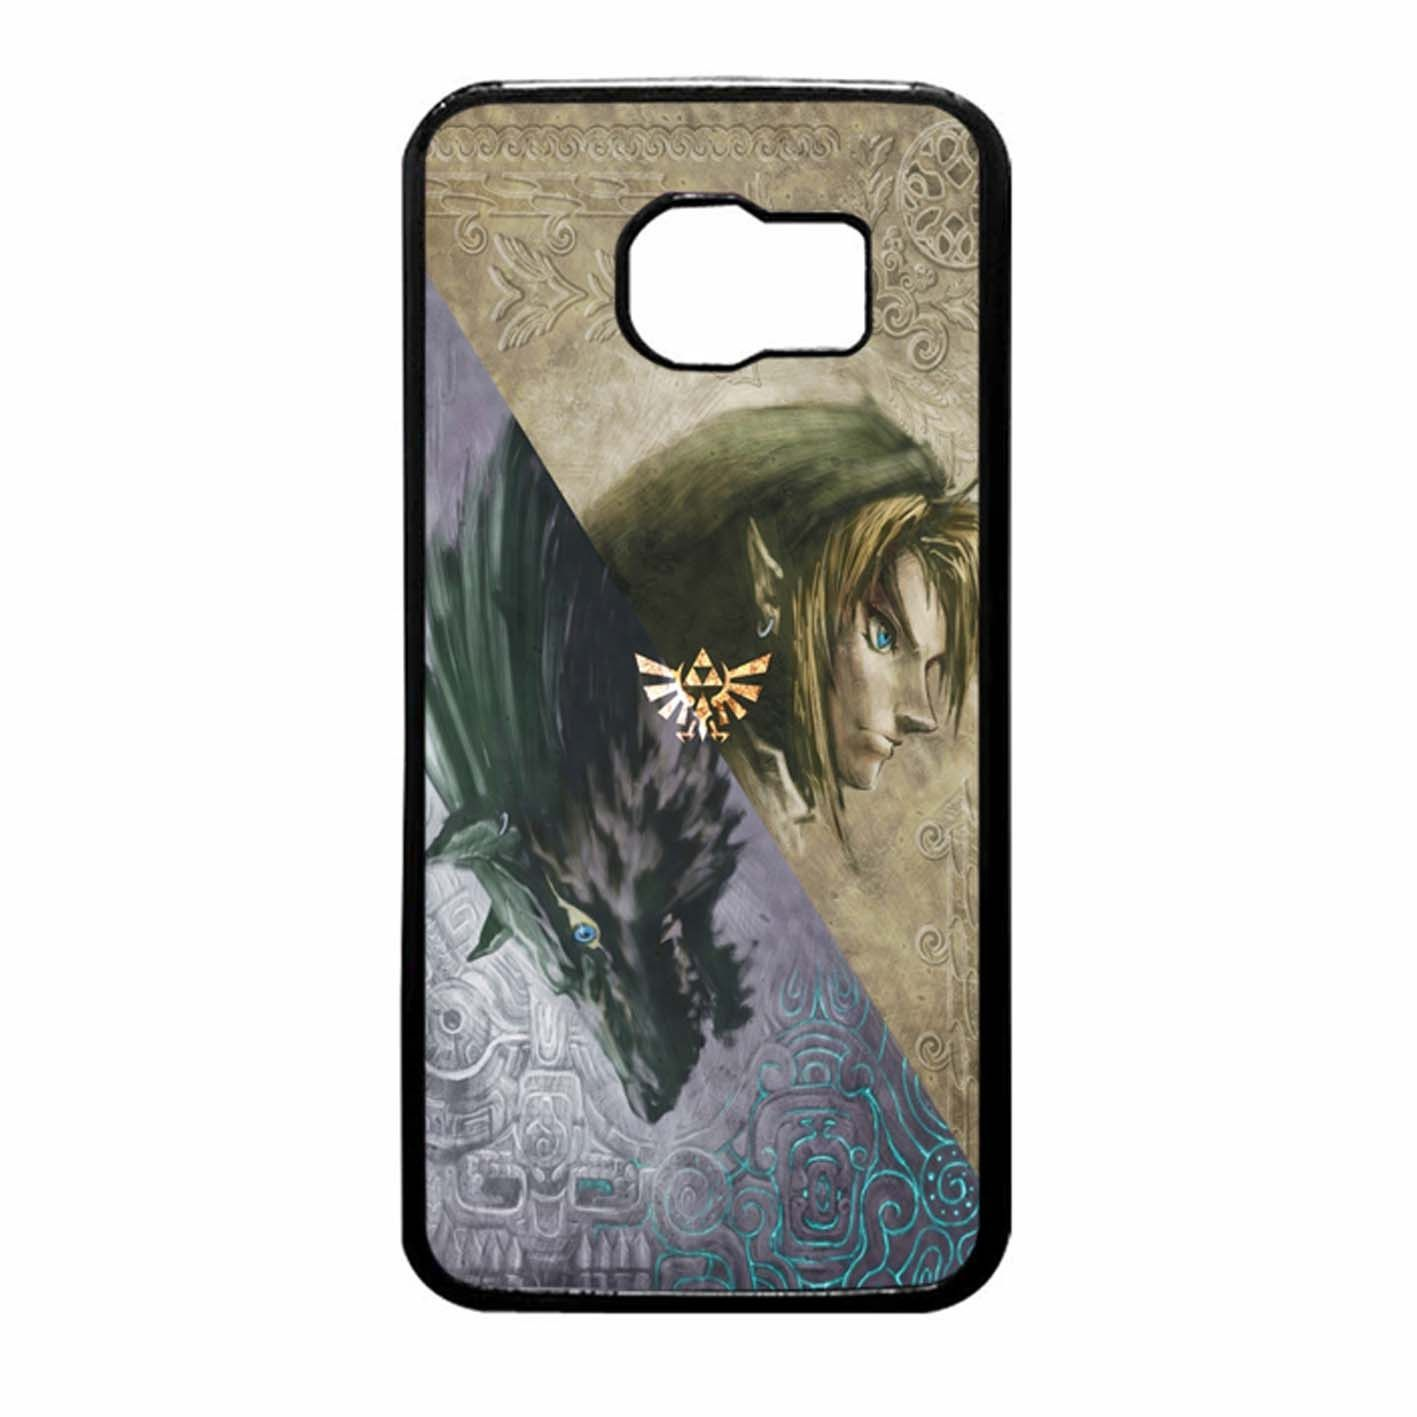 samsung galaxy s6 cases wolf